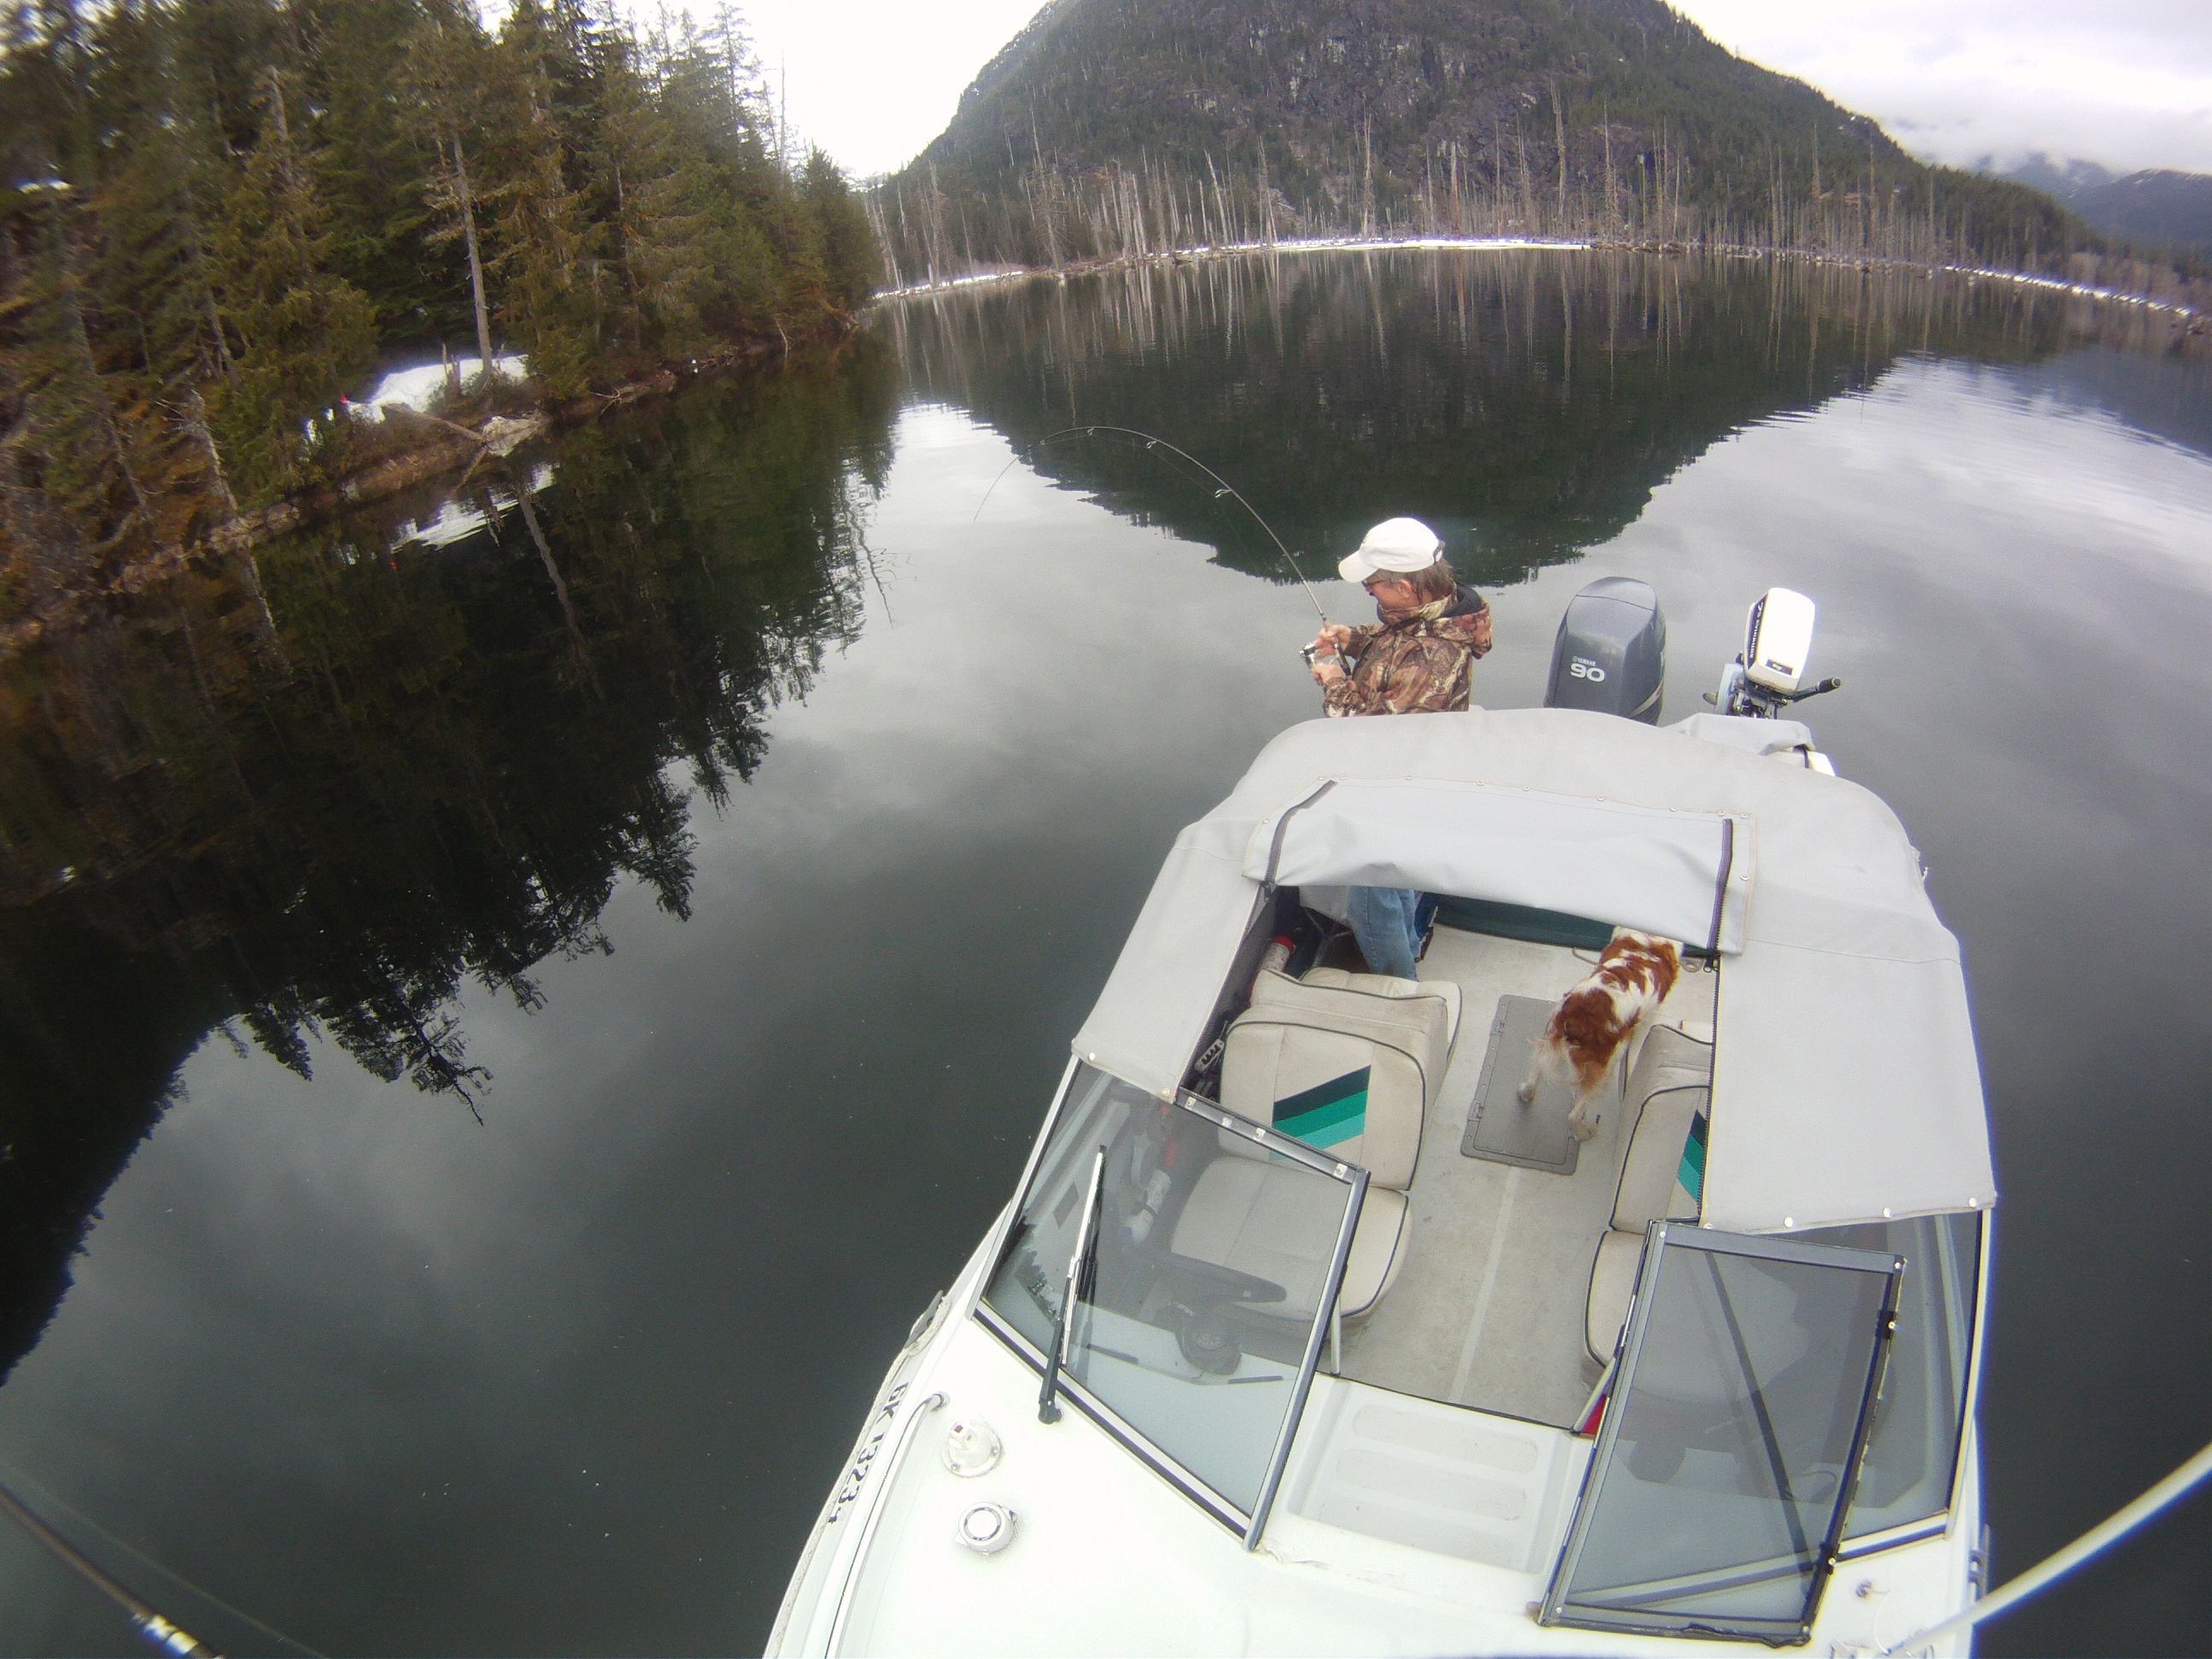 Trout Fishing on Vancouver Island Lakes - The Fishing Experience